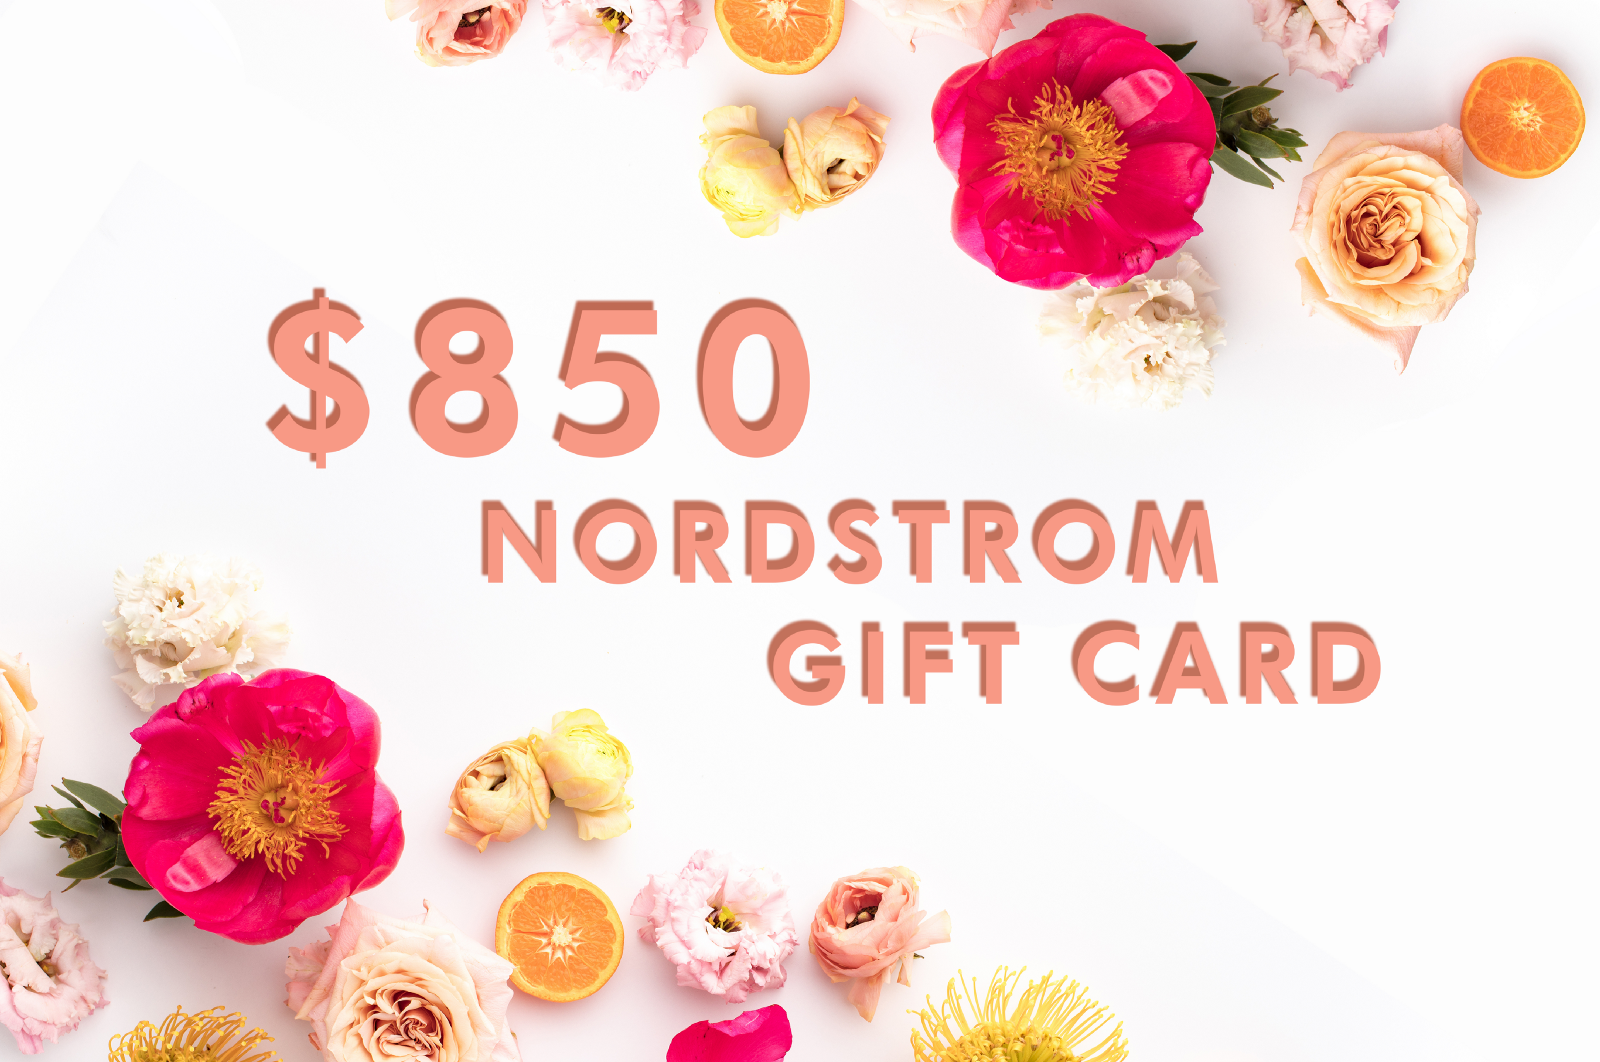 $850 Nordstrom Gift Card Giveaway